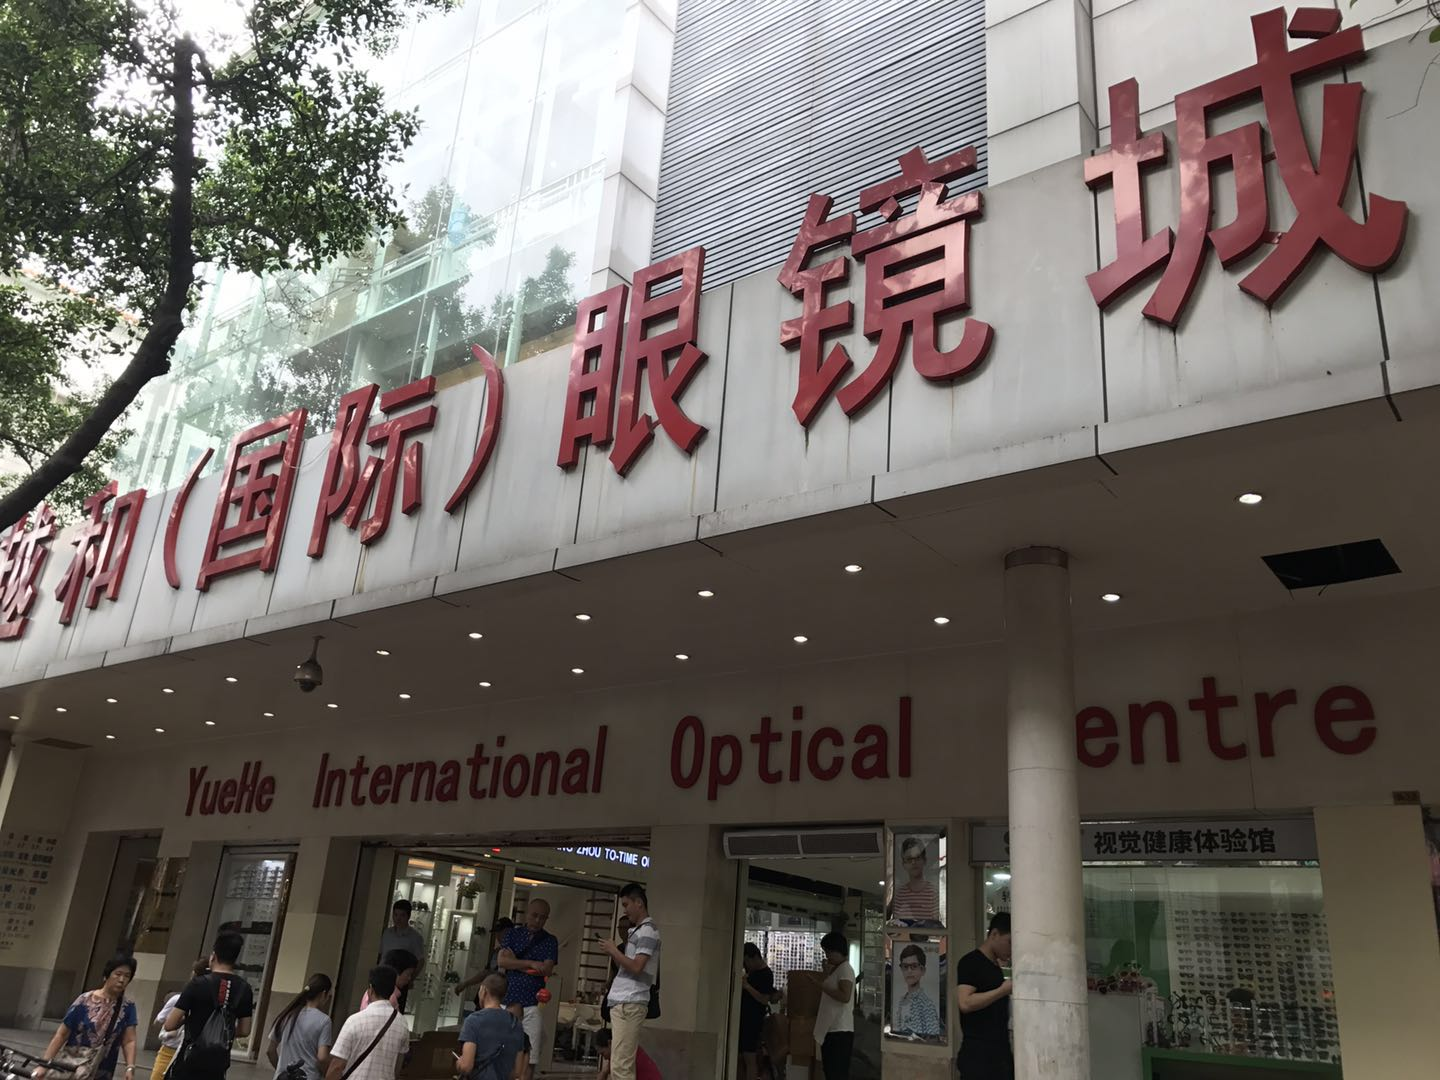 Yuehe international optical centre in Guangzhou-1